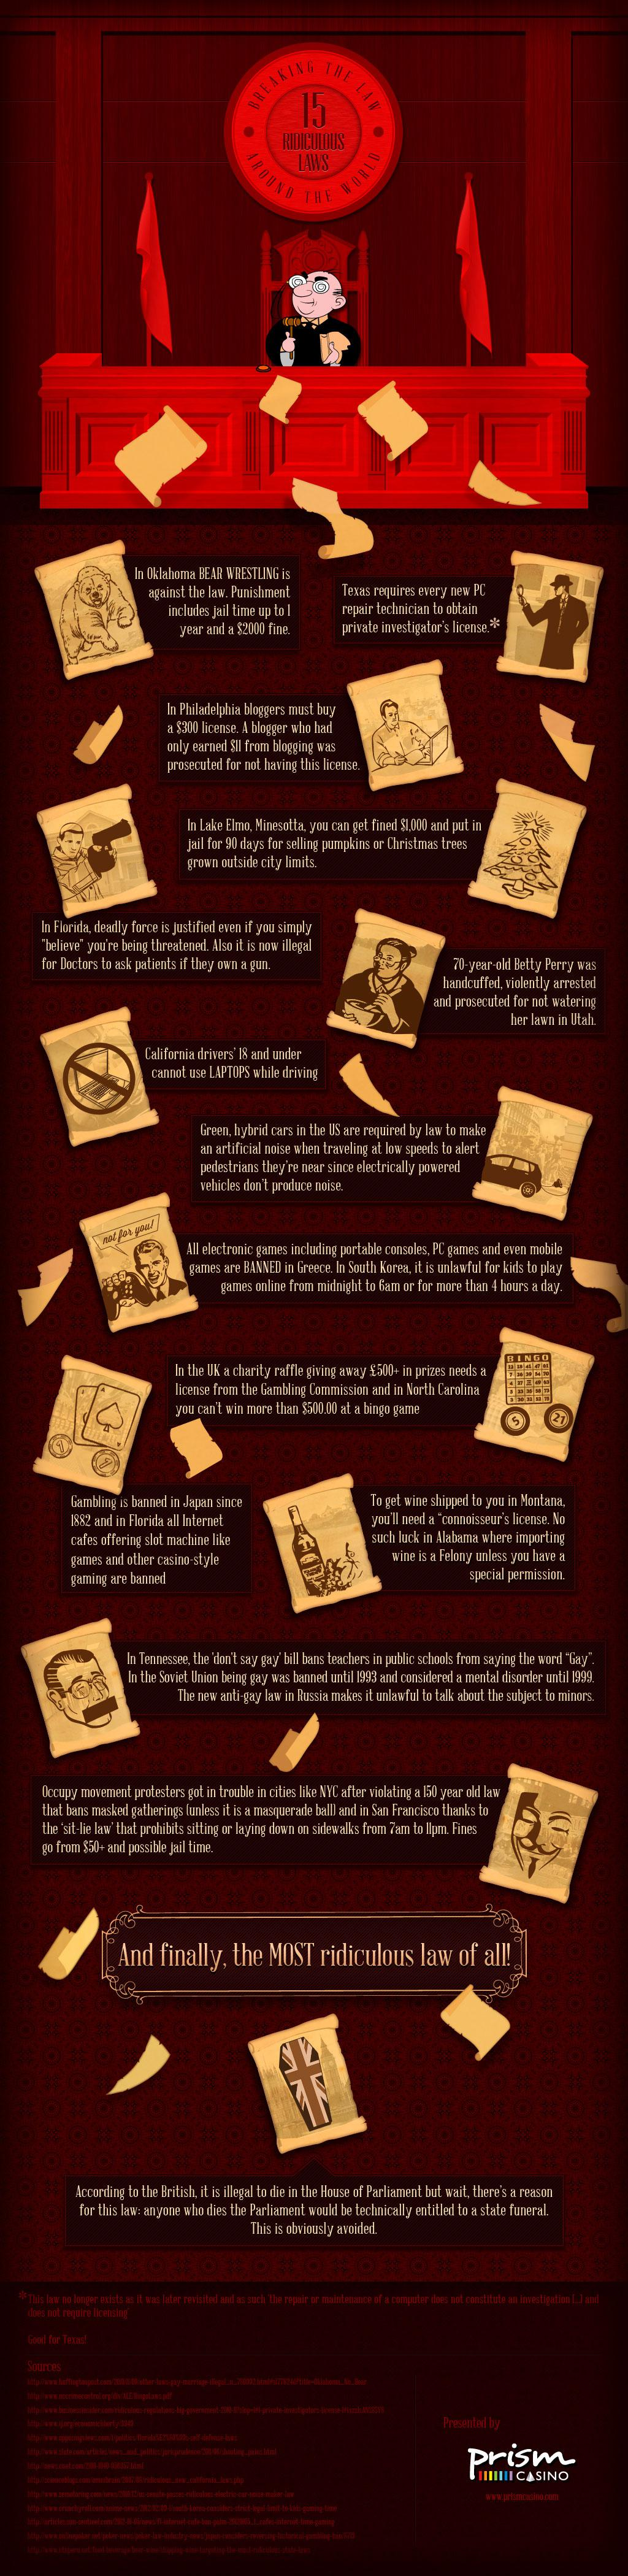 Infographic: Breaking the Law: 15 ridiculous laws